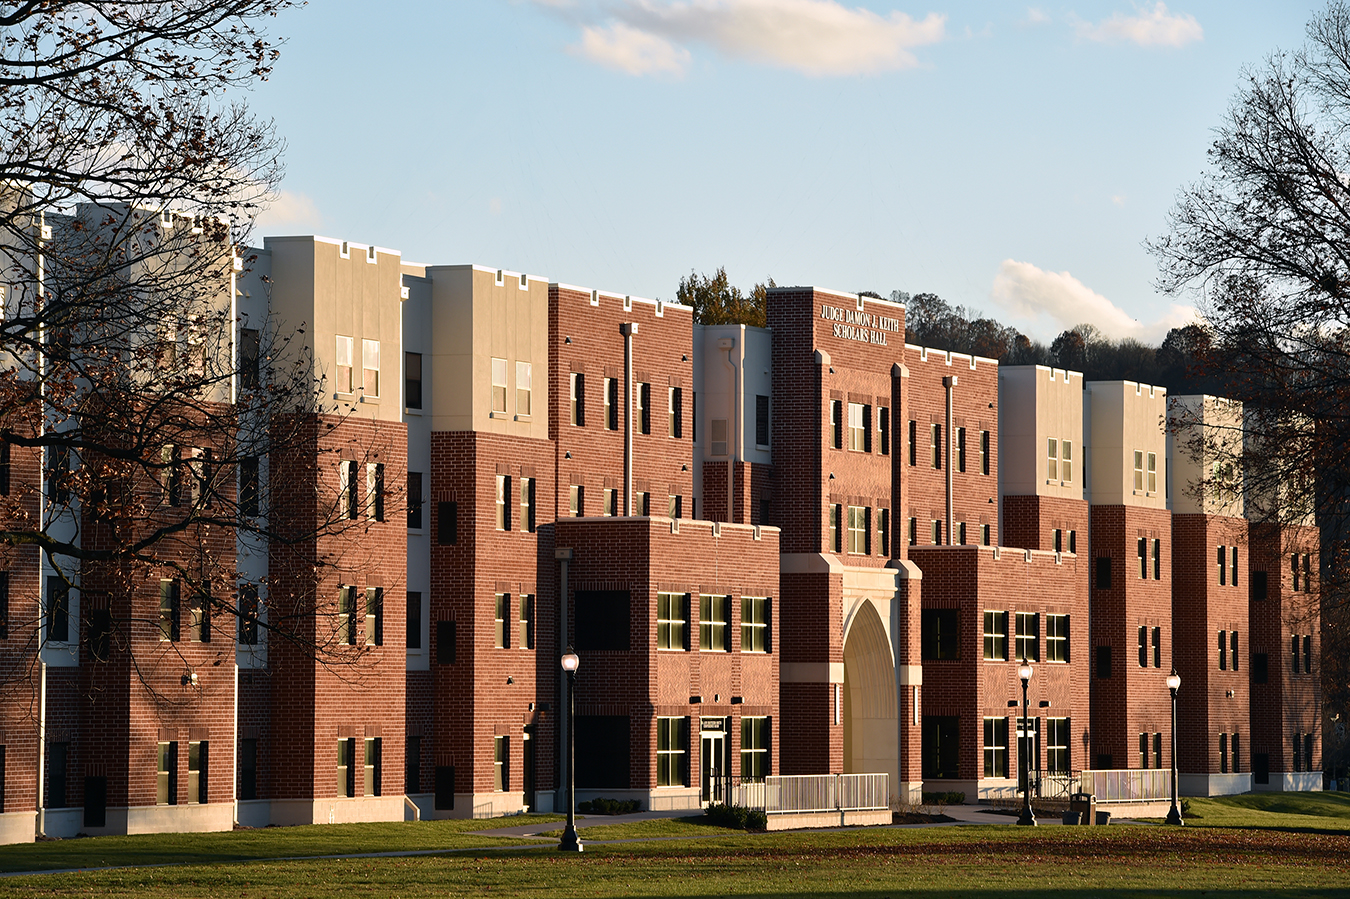 Judge Damon J. Keith Scholars Hall, residence hall